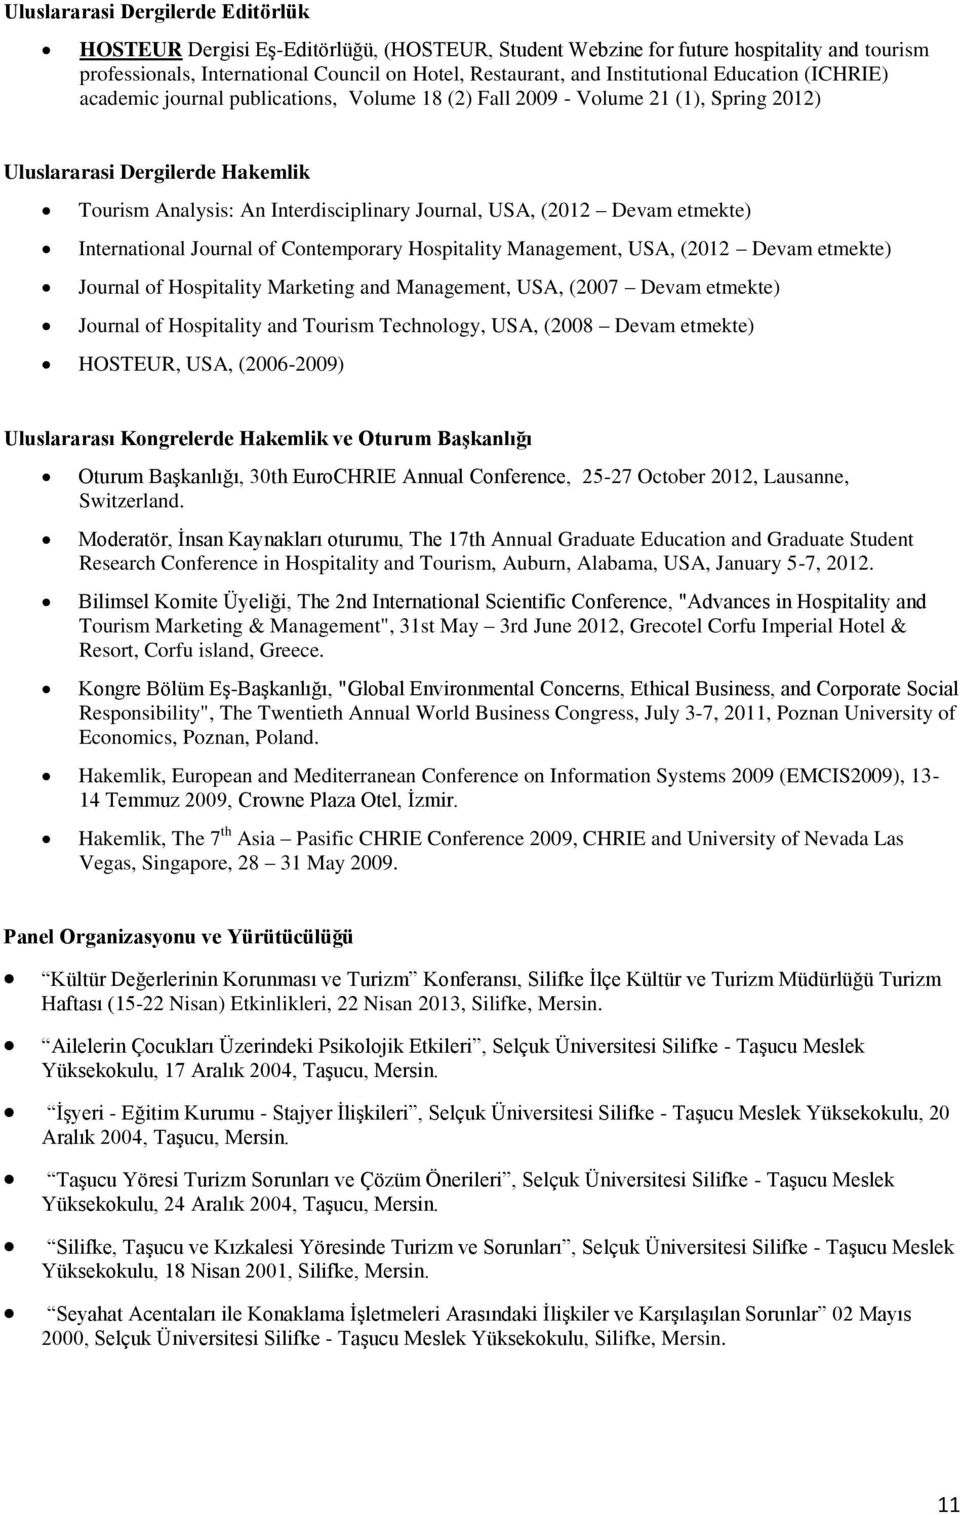 USA, (2012 Devam etmekte) International Journal of Contemporary Hospitality Management, USA, (2012 Devam etmekte) Journal of Hospitality Marketing and Management, USA, (2007 Devam etmekte) Journal of